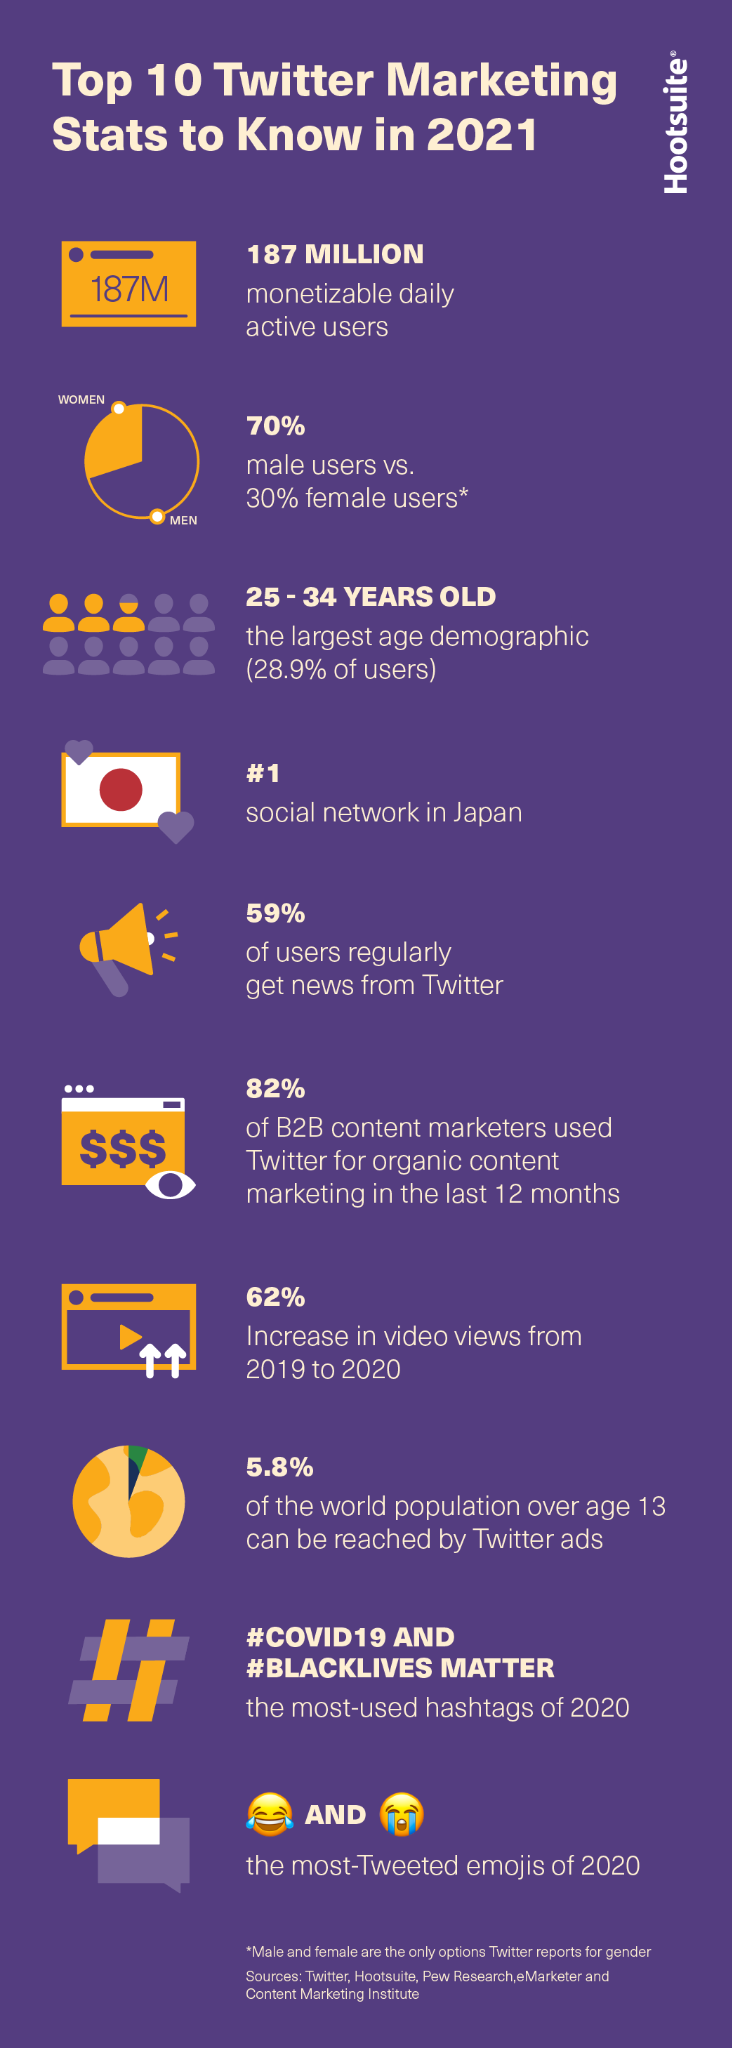 Top 10 Twitter marketing stats for 2021, infographic